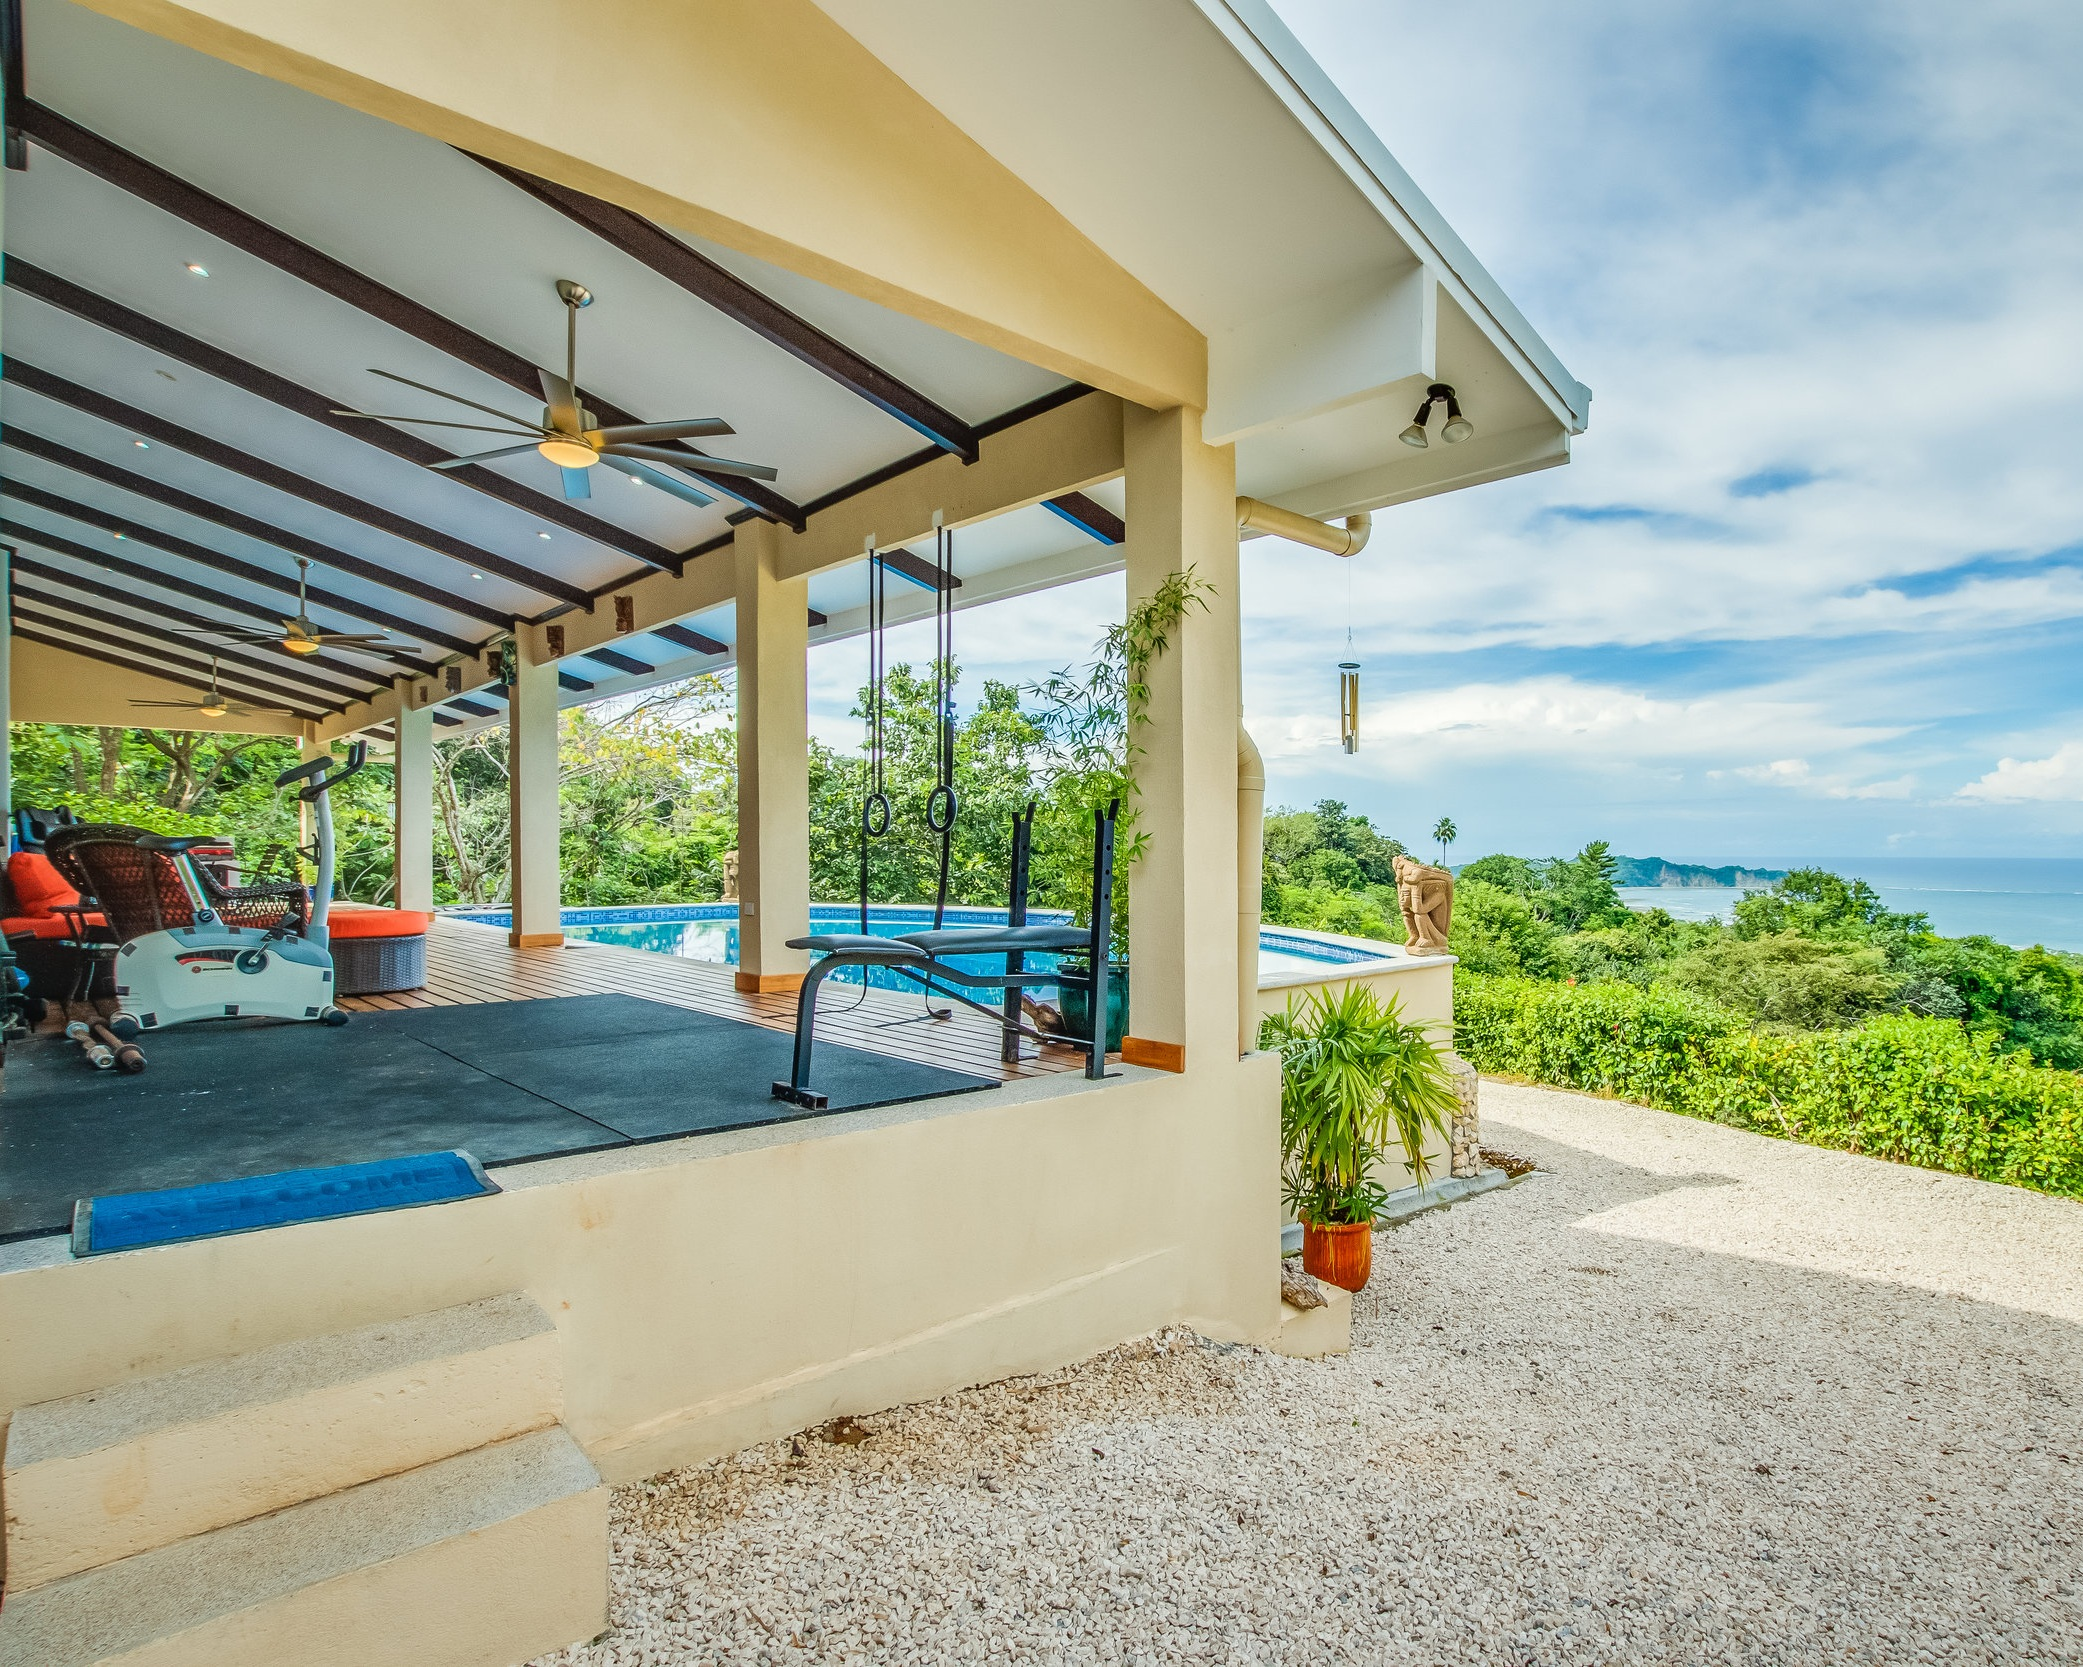 Private Pool Fully Equipped Kitchen Air Conditioning Outdoor Gym Wireless Internet Jacuzzi  CLICK FOR MORE DETAILS